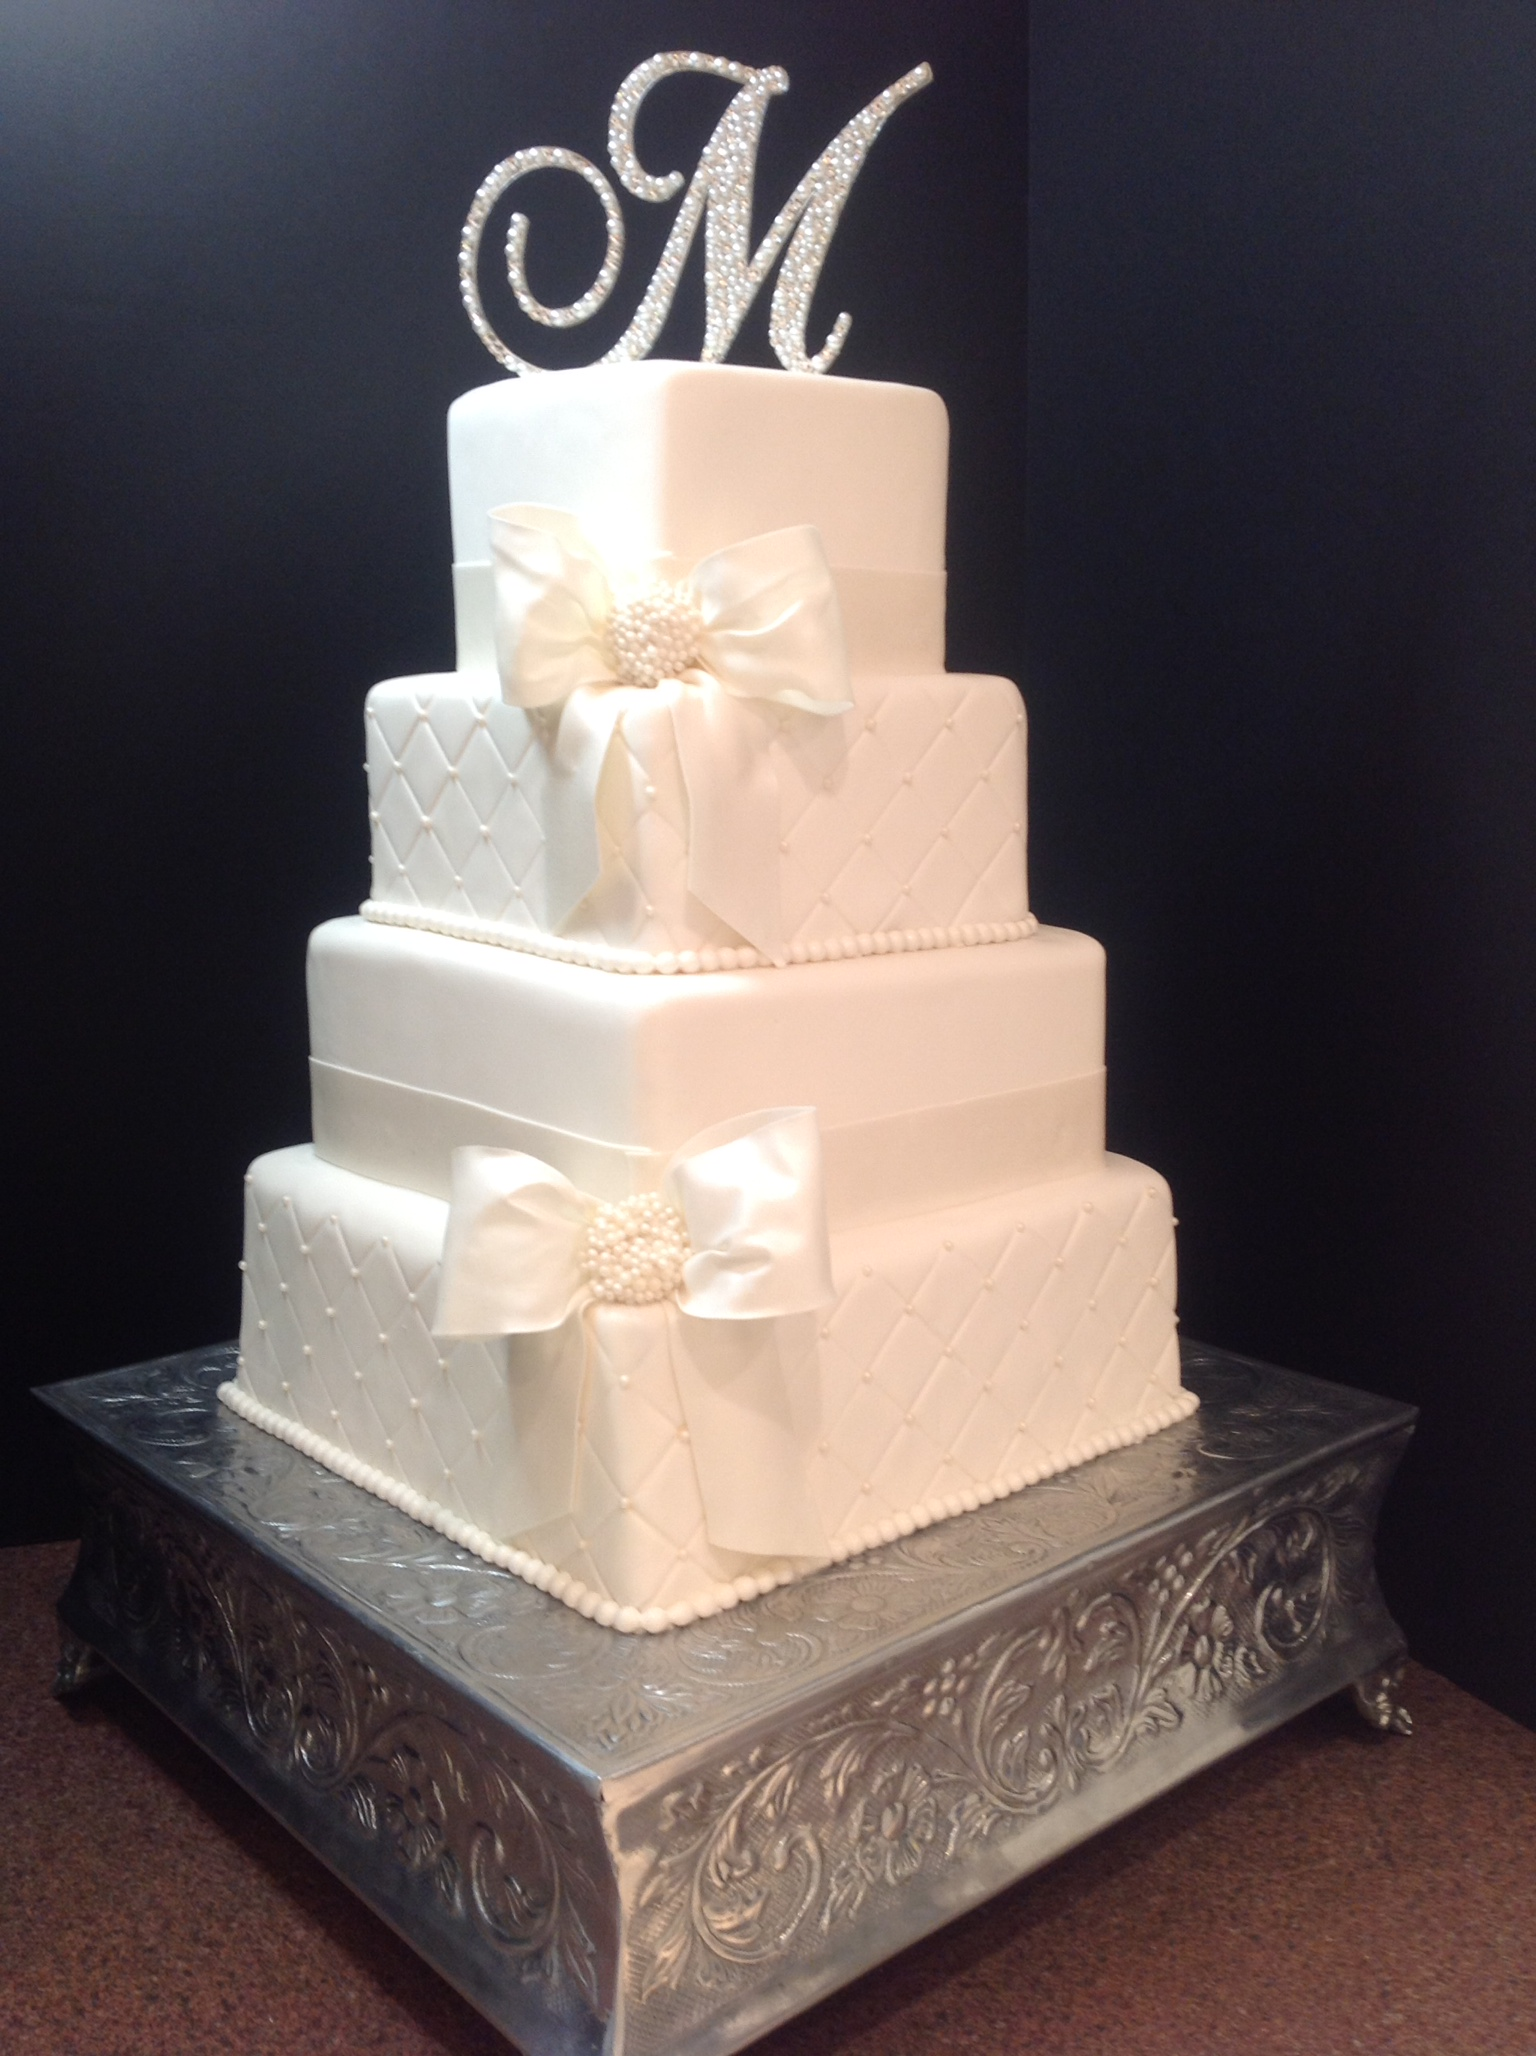 Cake Decor And More E U : M&T Events Custom Cakes Bakery   Custom Wedding and Events Cakes with a European Taste